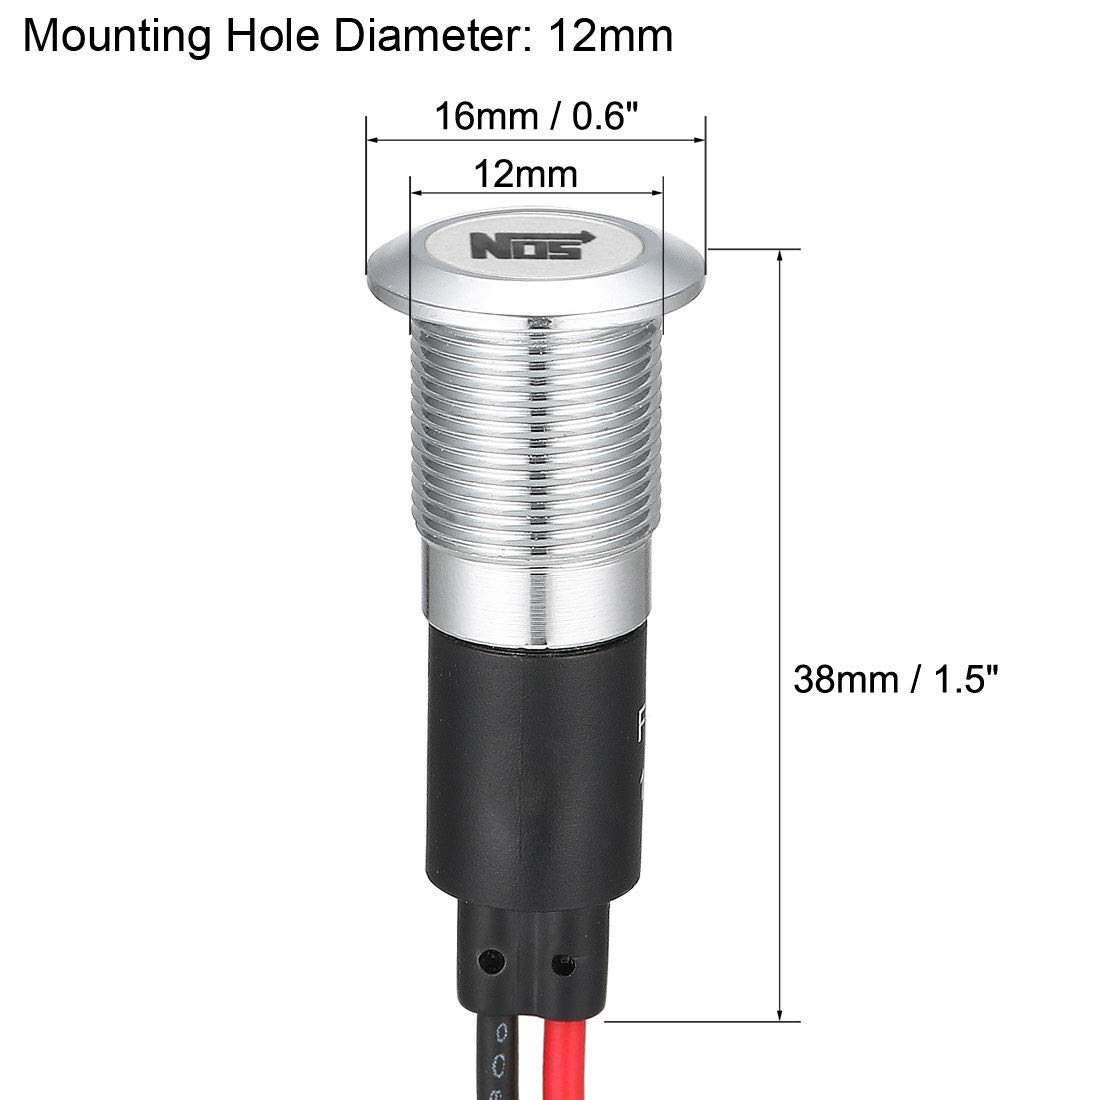 uxcell Signal Indicator Light DC 12V 12mm Red LED Metal Shell with Symbol NOS